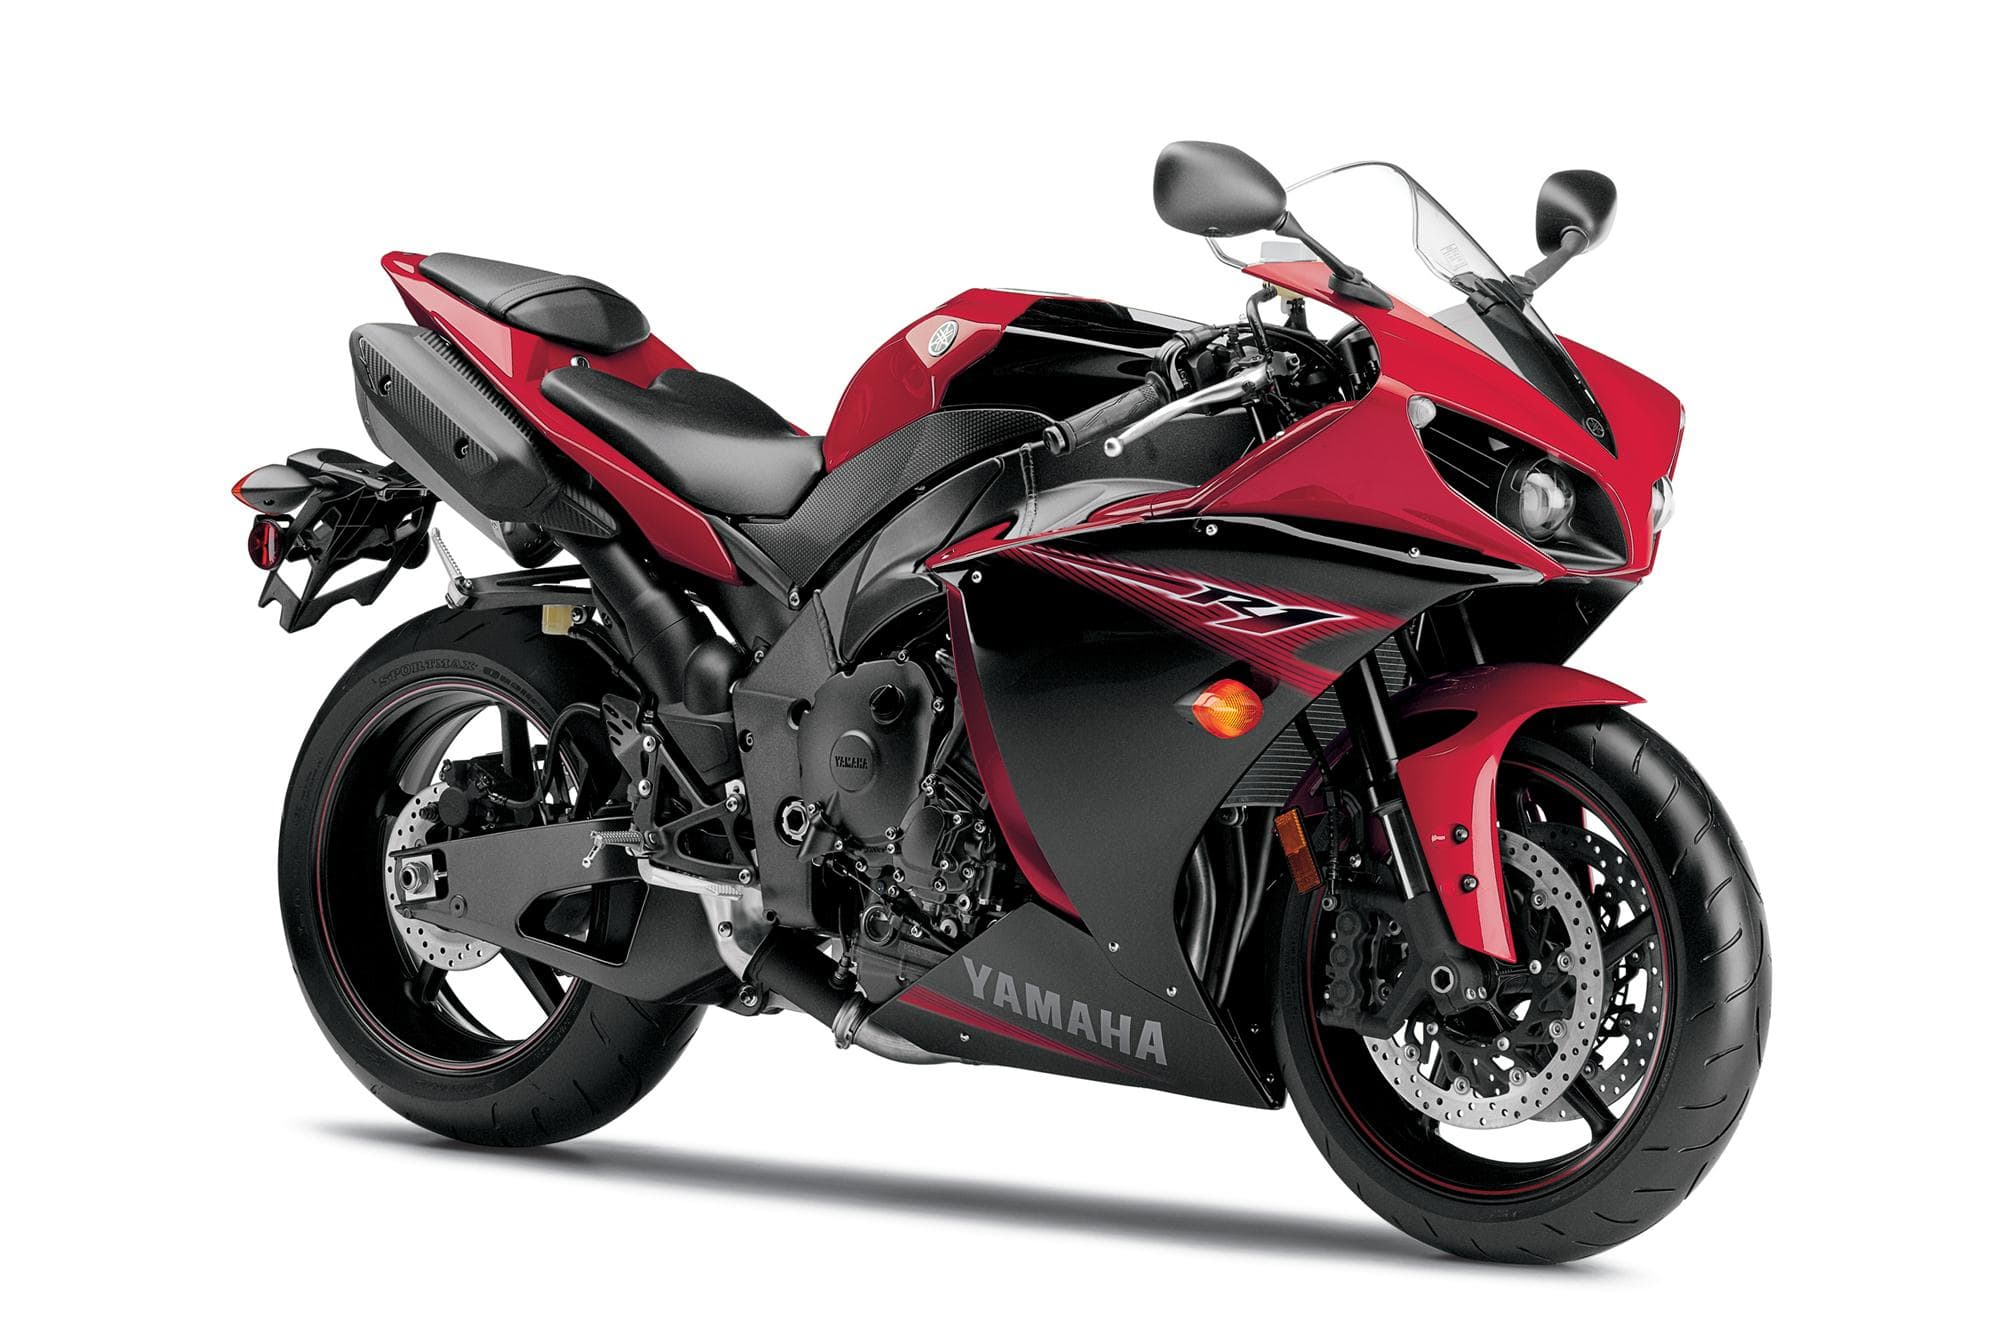 Yamaha YZF-R1 2012 Pictures